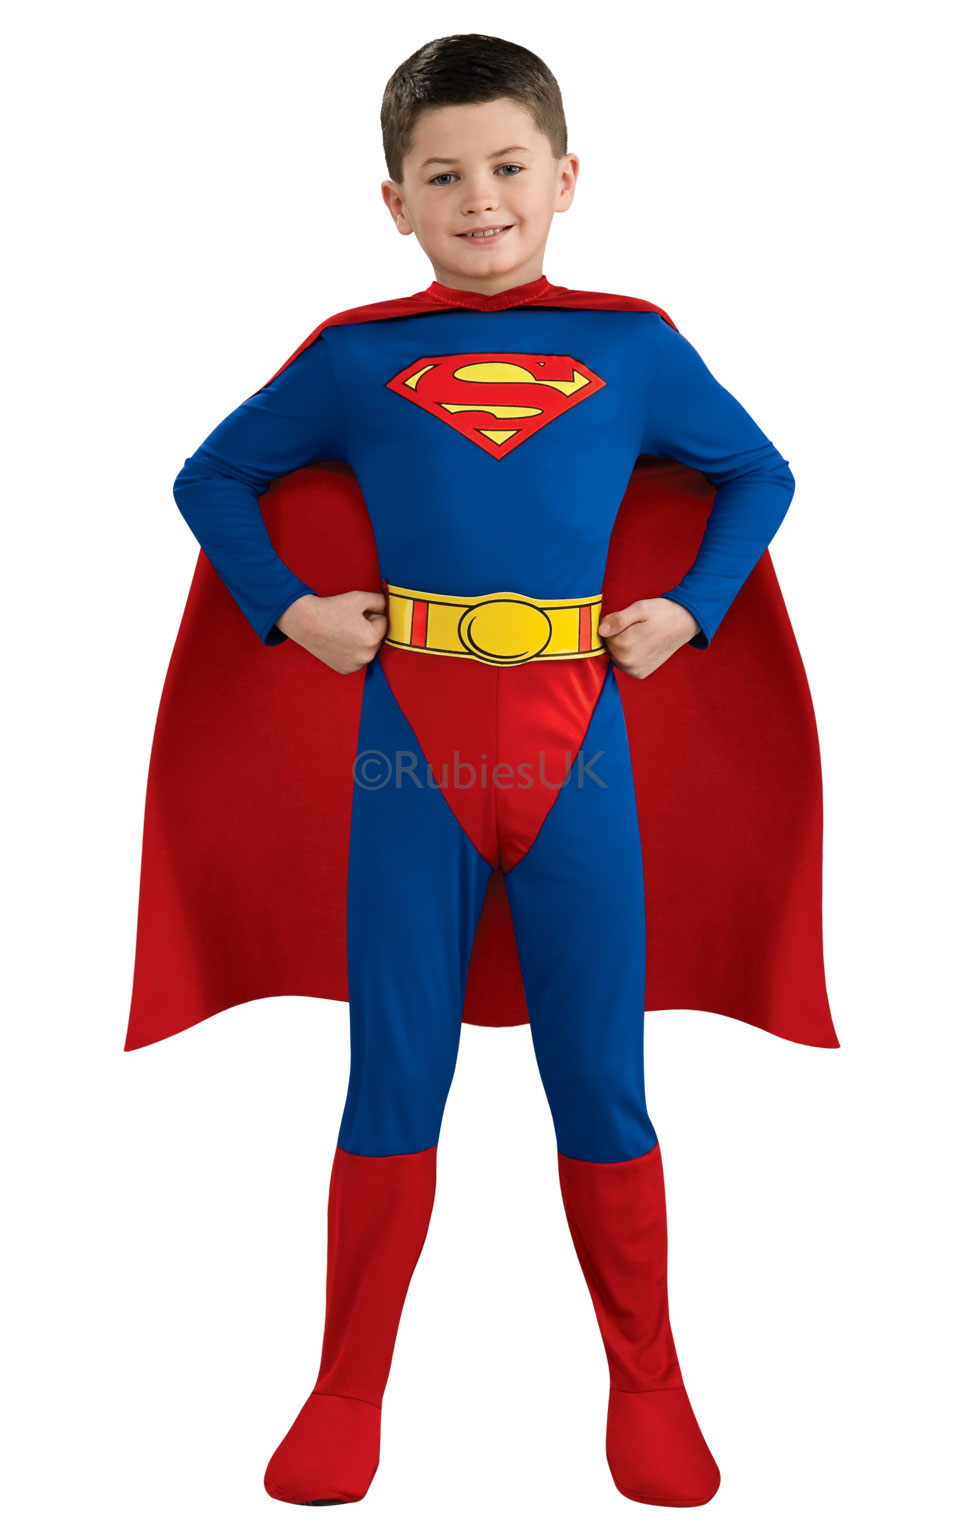 clasisc superman outfit